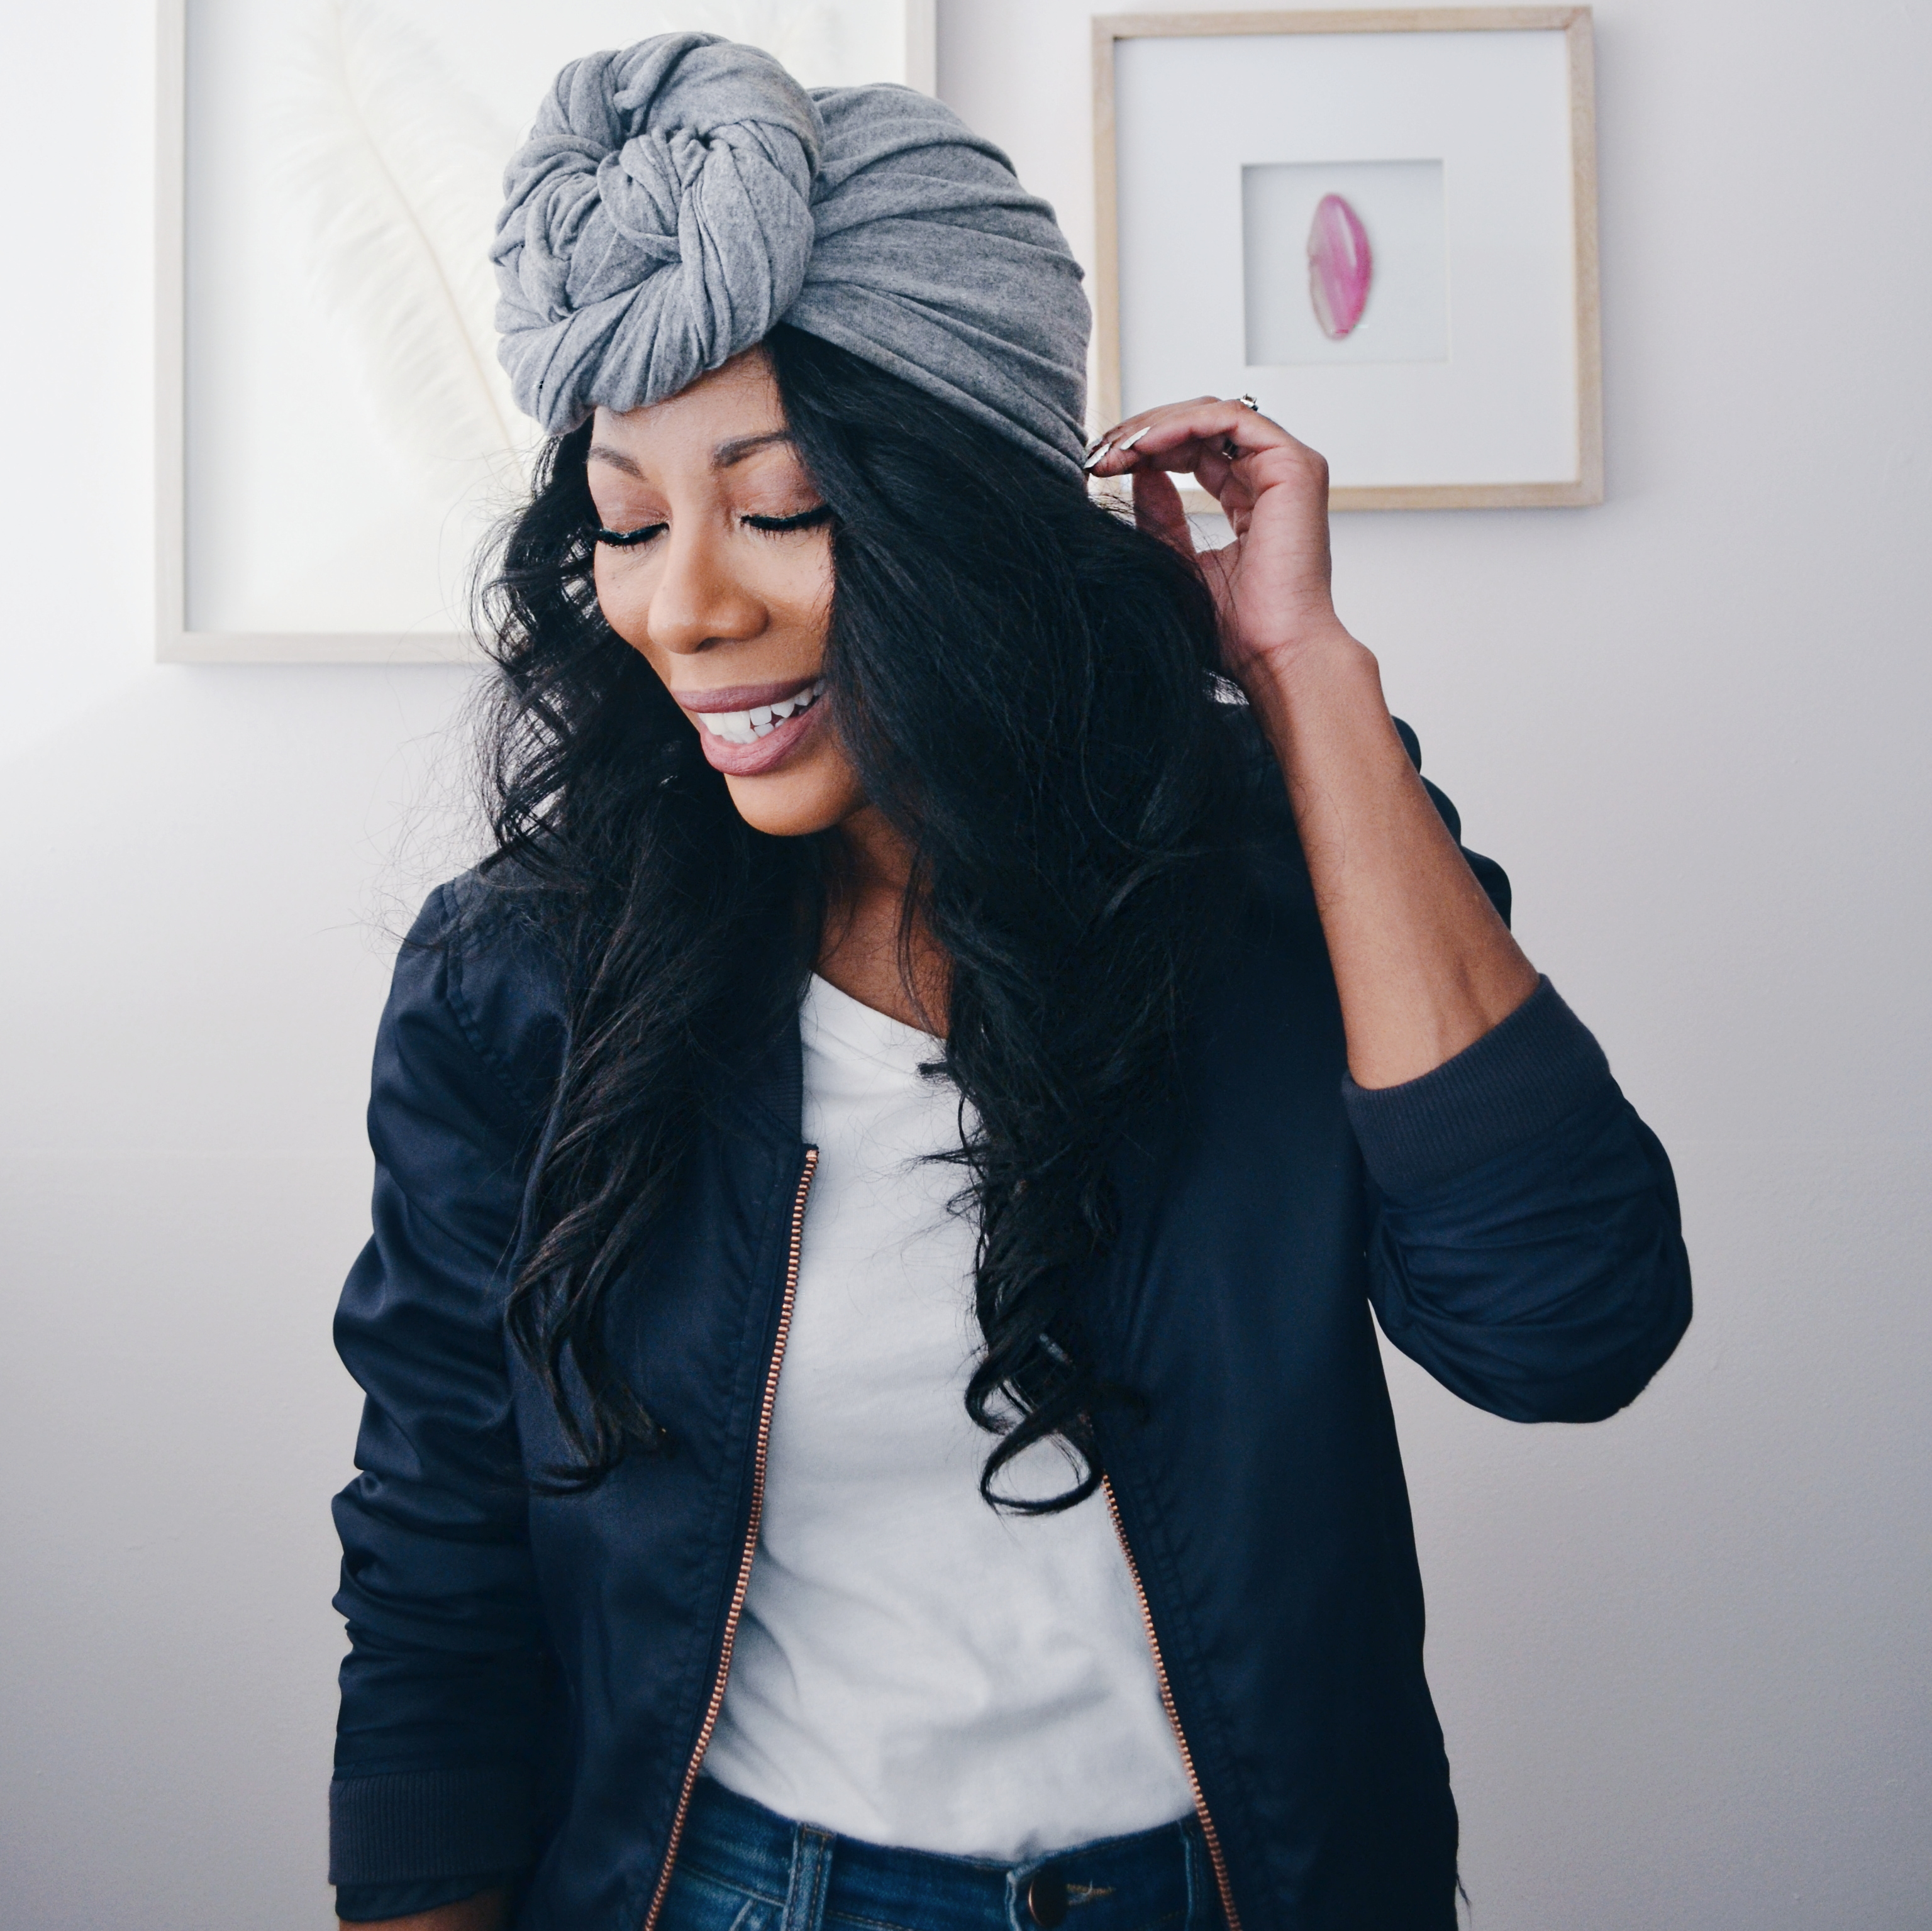 black woman head wrap smiling long hair